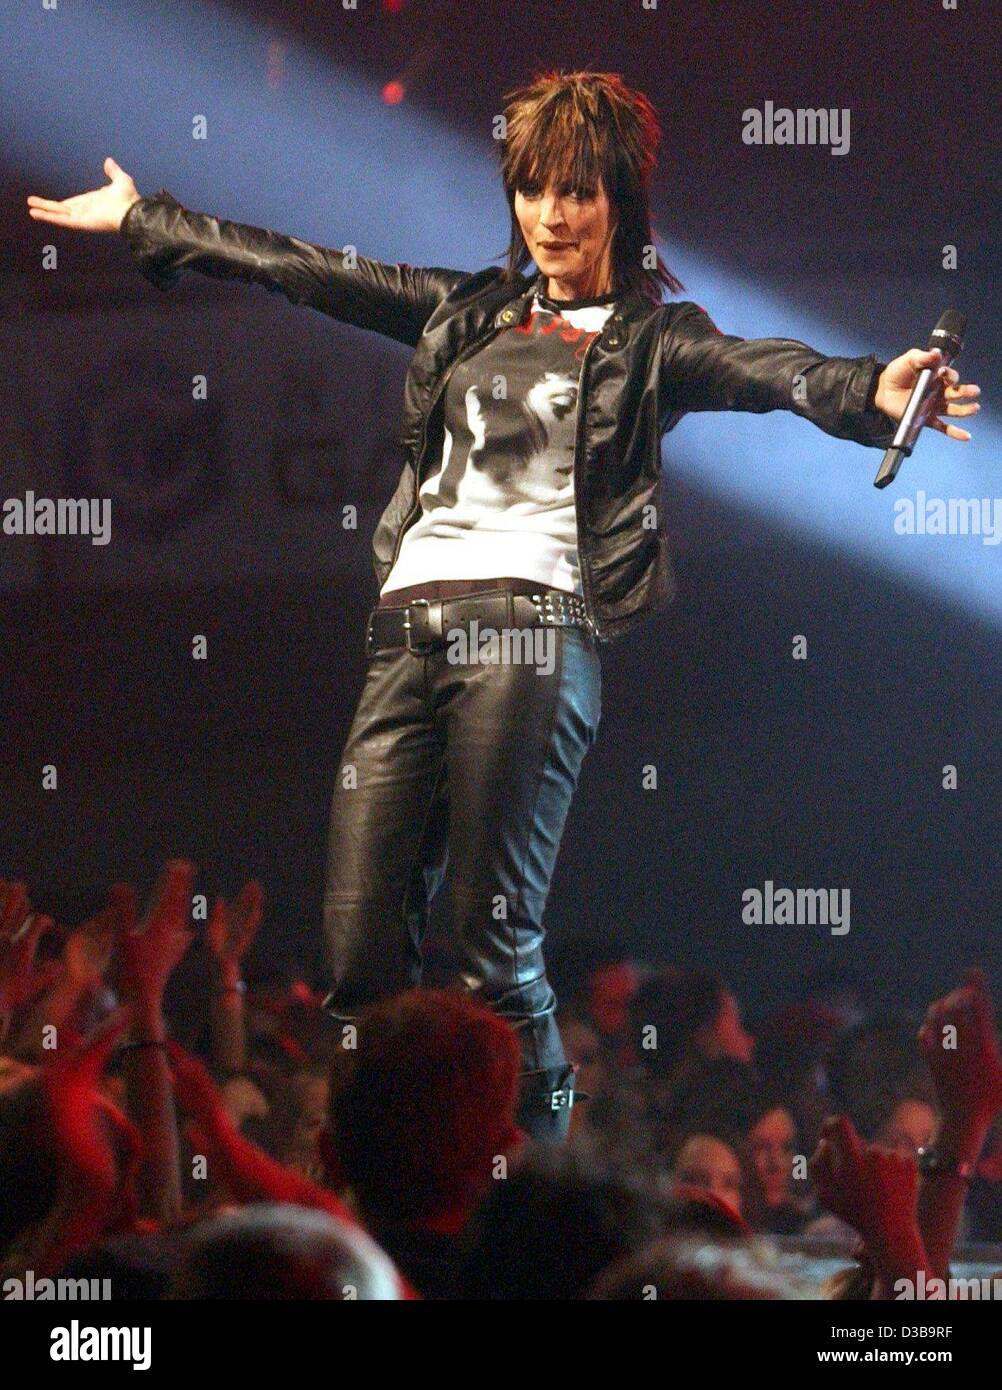 (dpa) - Nena, German pop star and former star of the Neue Deutsche Welle (new German wave), acknowledges the applause - Stock Image